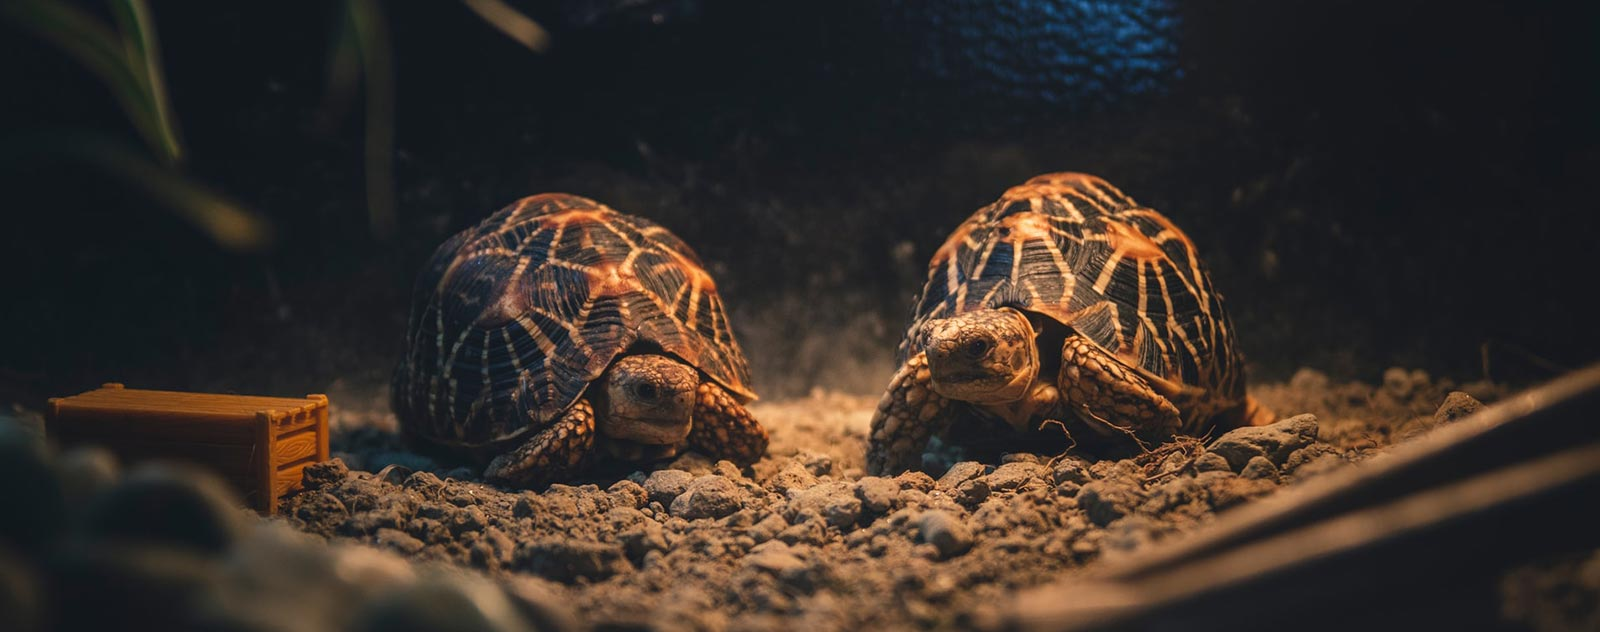 tortue-signification